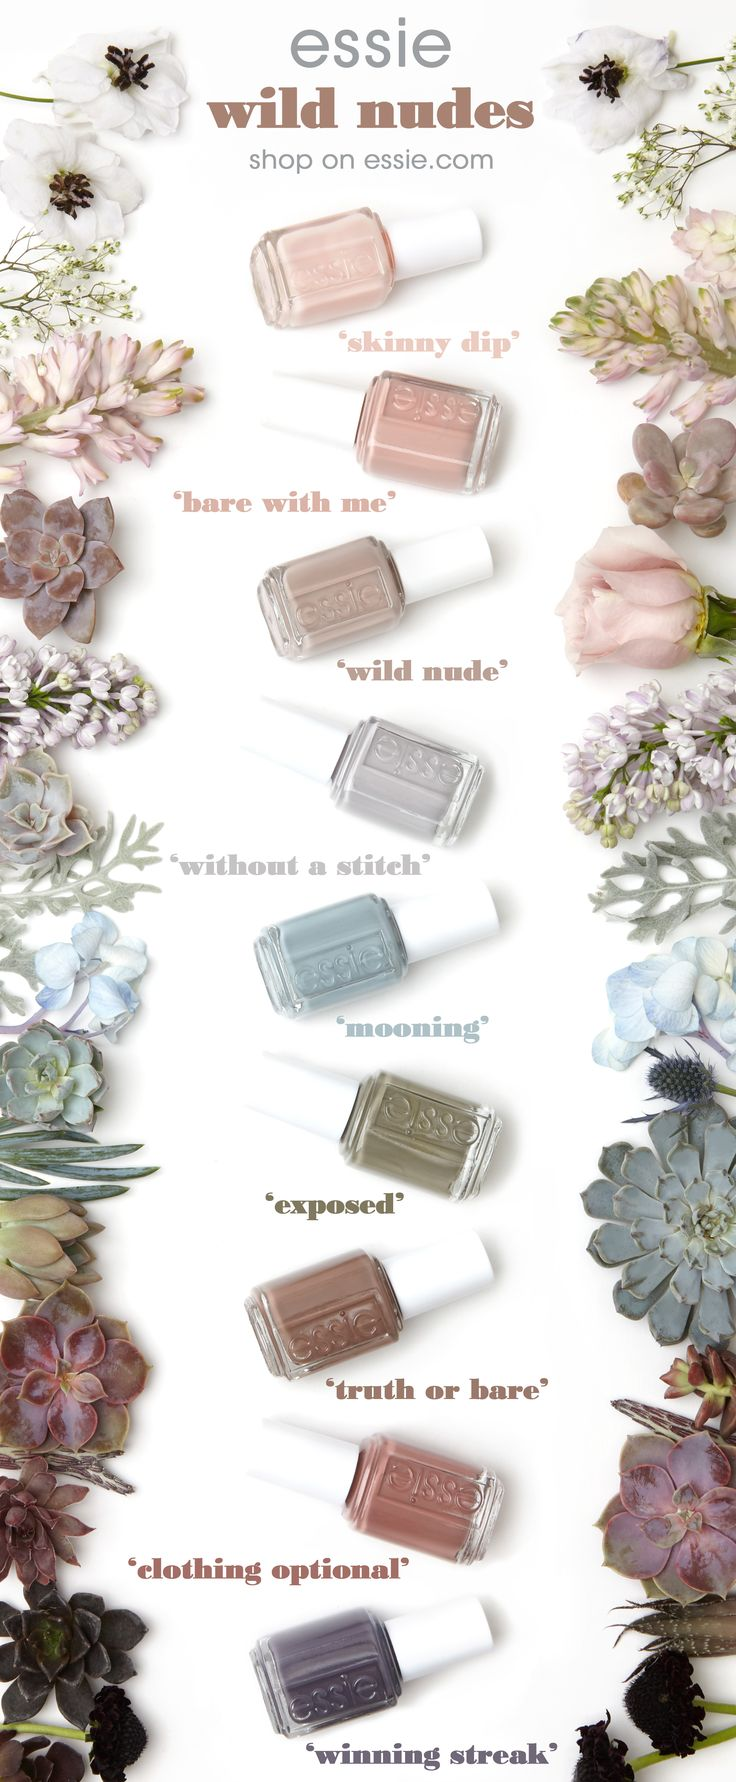 from a light tan with a wash of white to a shadowy blue, these shades are meant to be exposed. strip down and bare it all in the wildest of nude nail colors for spring. untamed, fierce and sexy, these